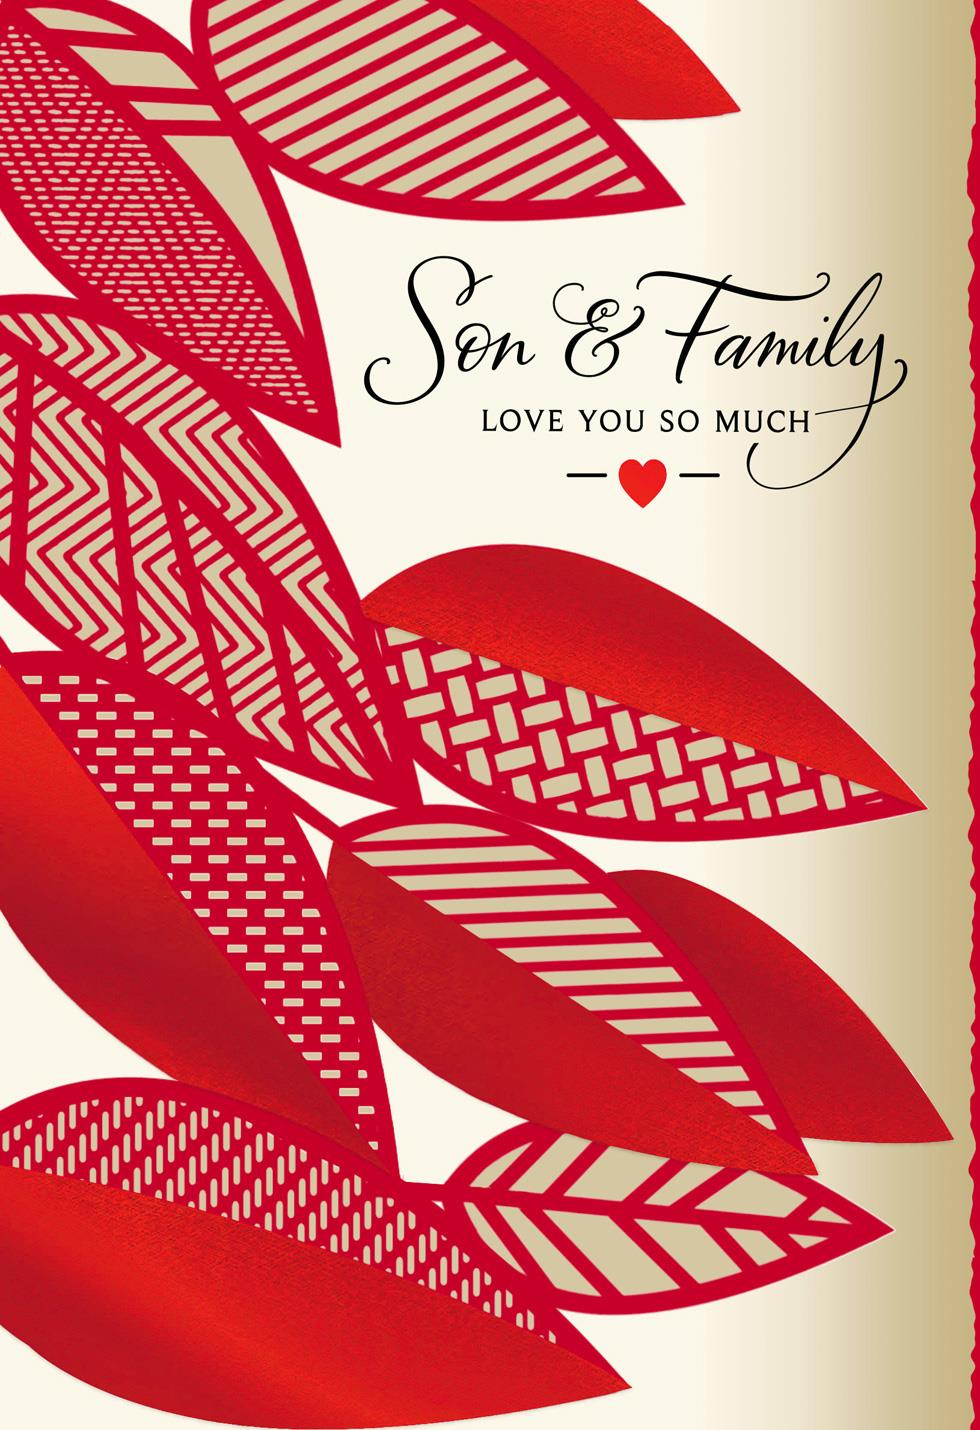 Love You So Much Valentines Day Card For Son And Family